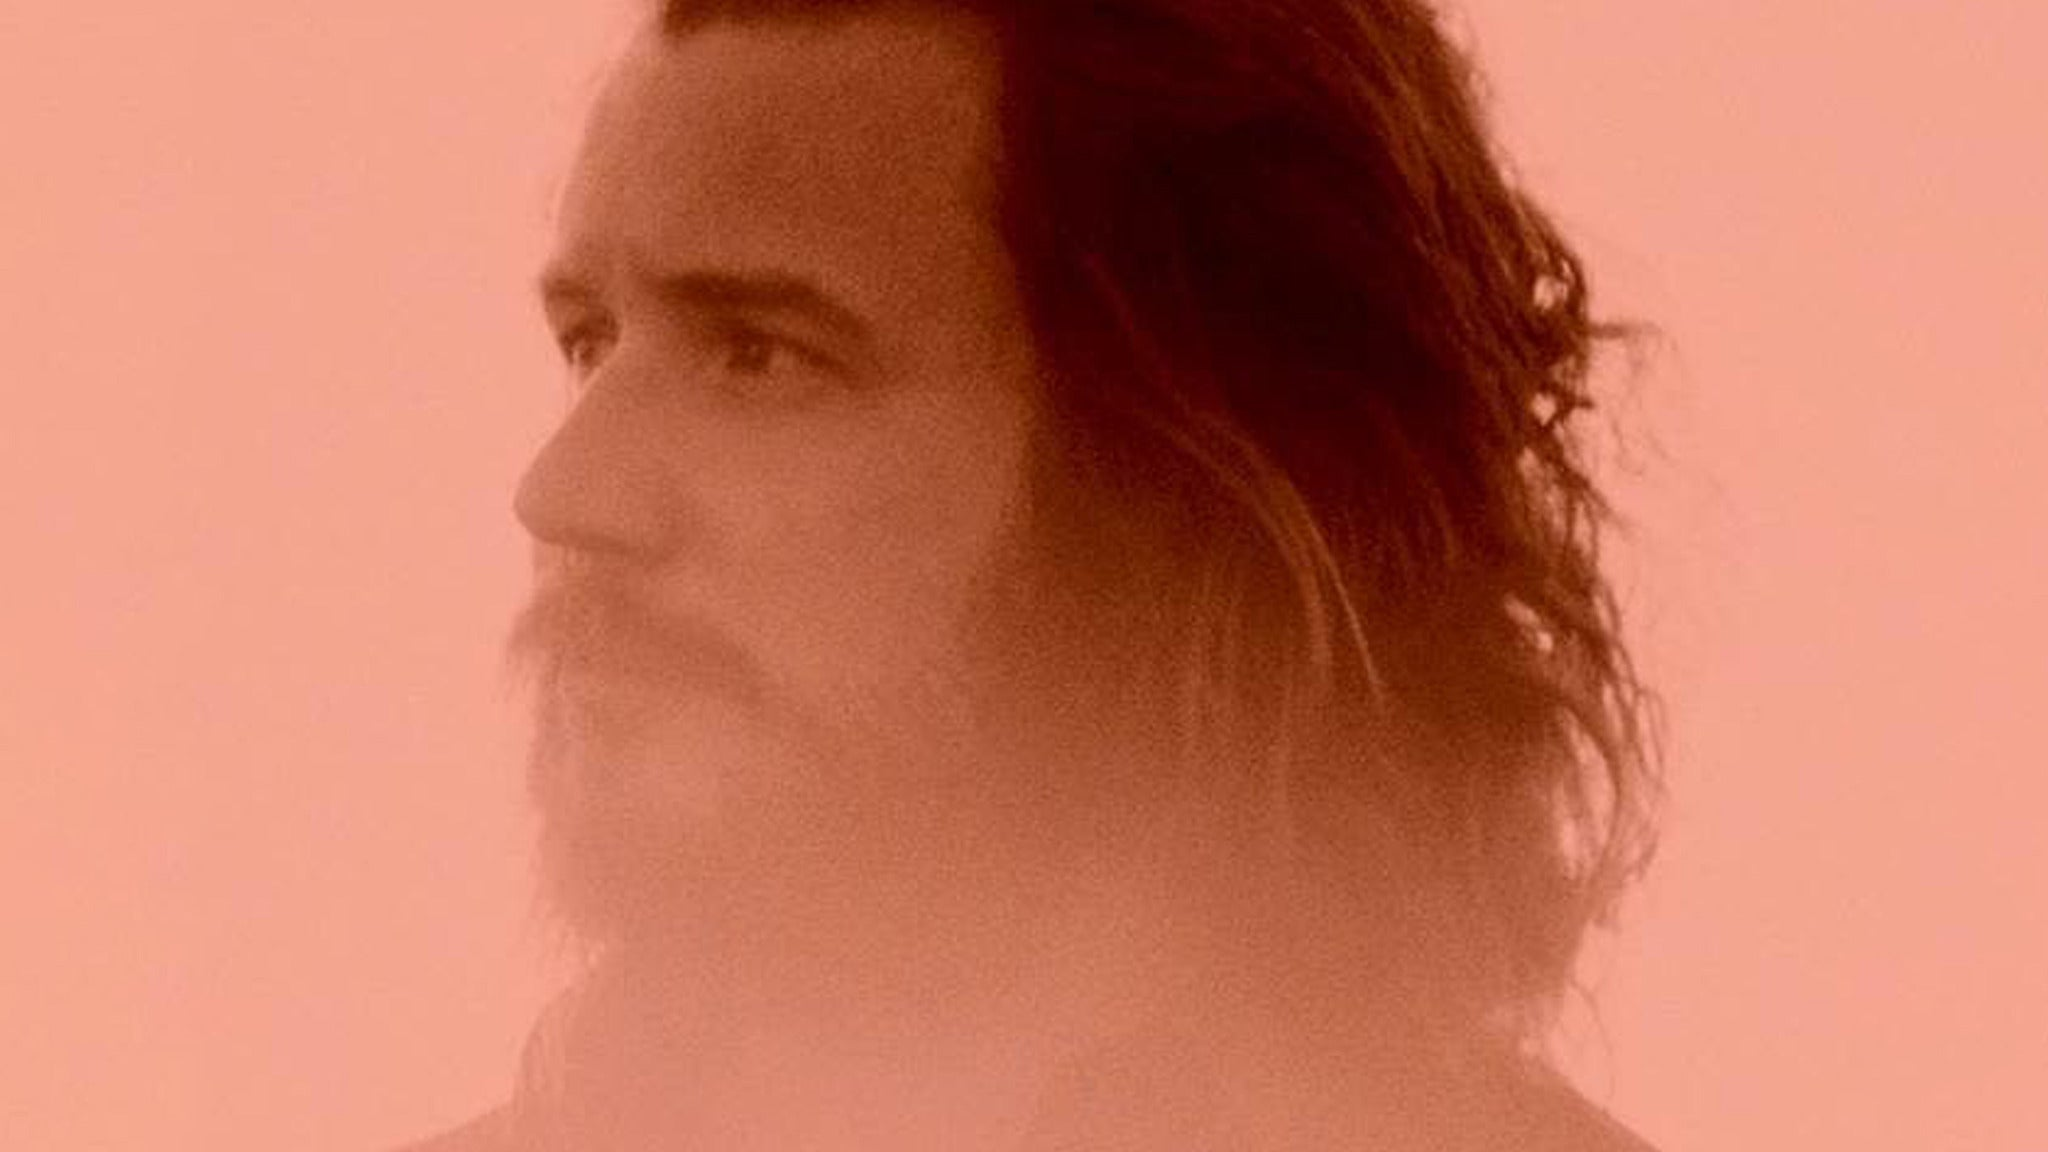 91.9 WFPK presents Jim James with Twin Limb